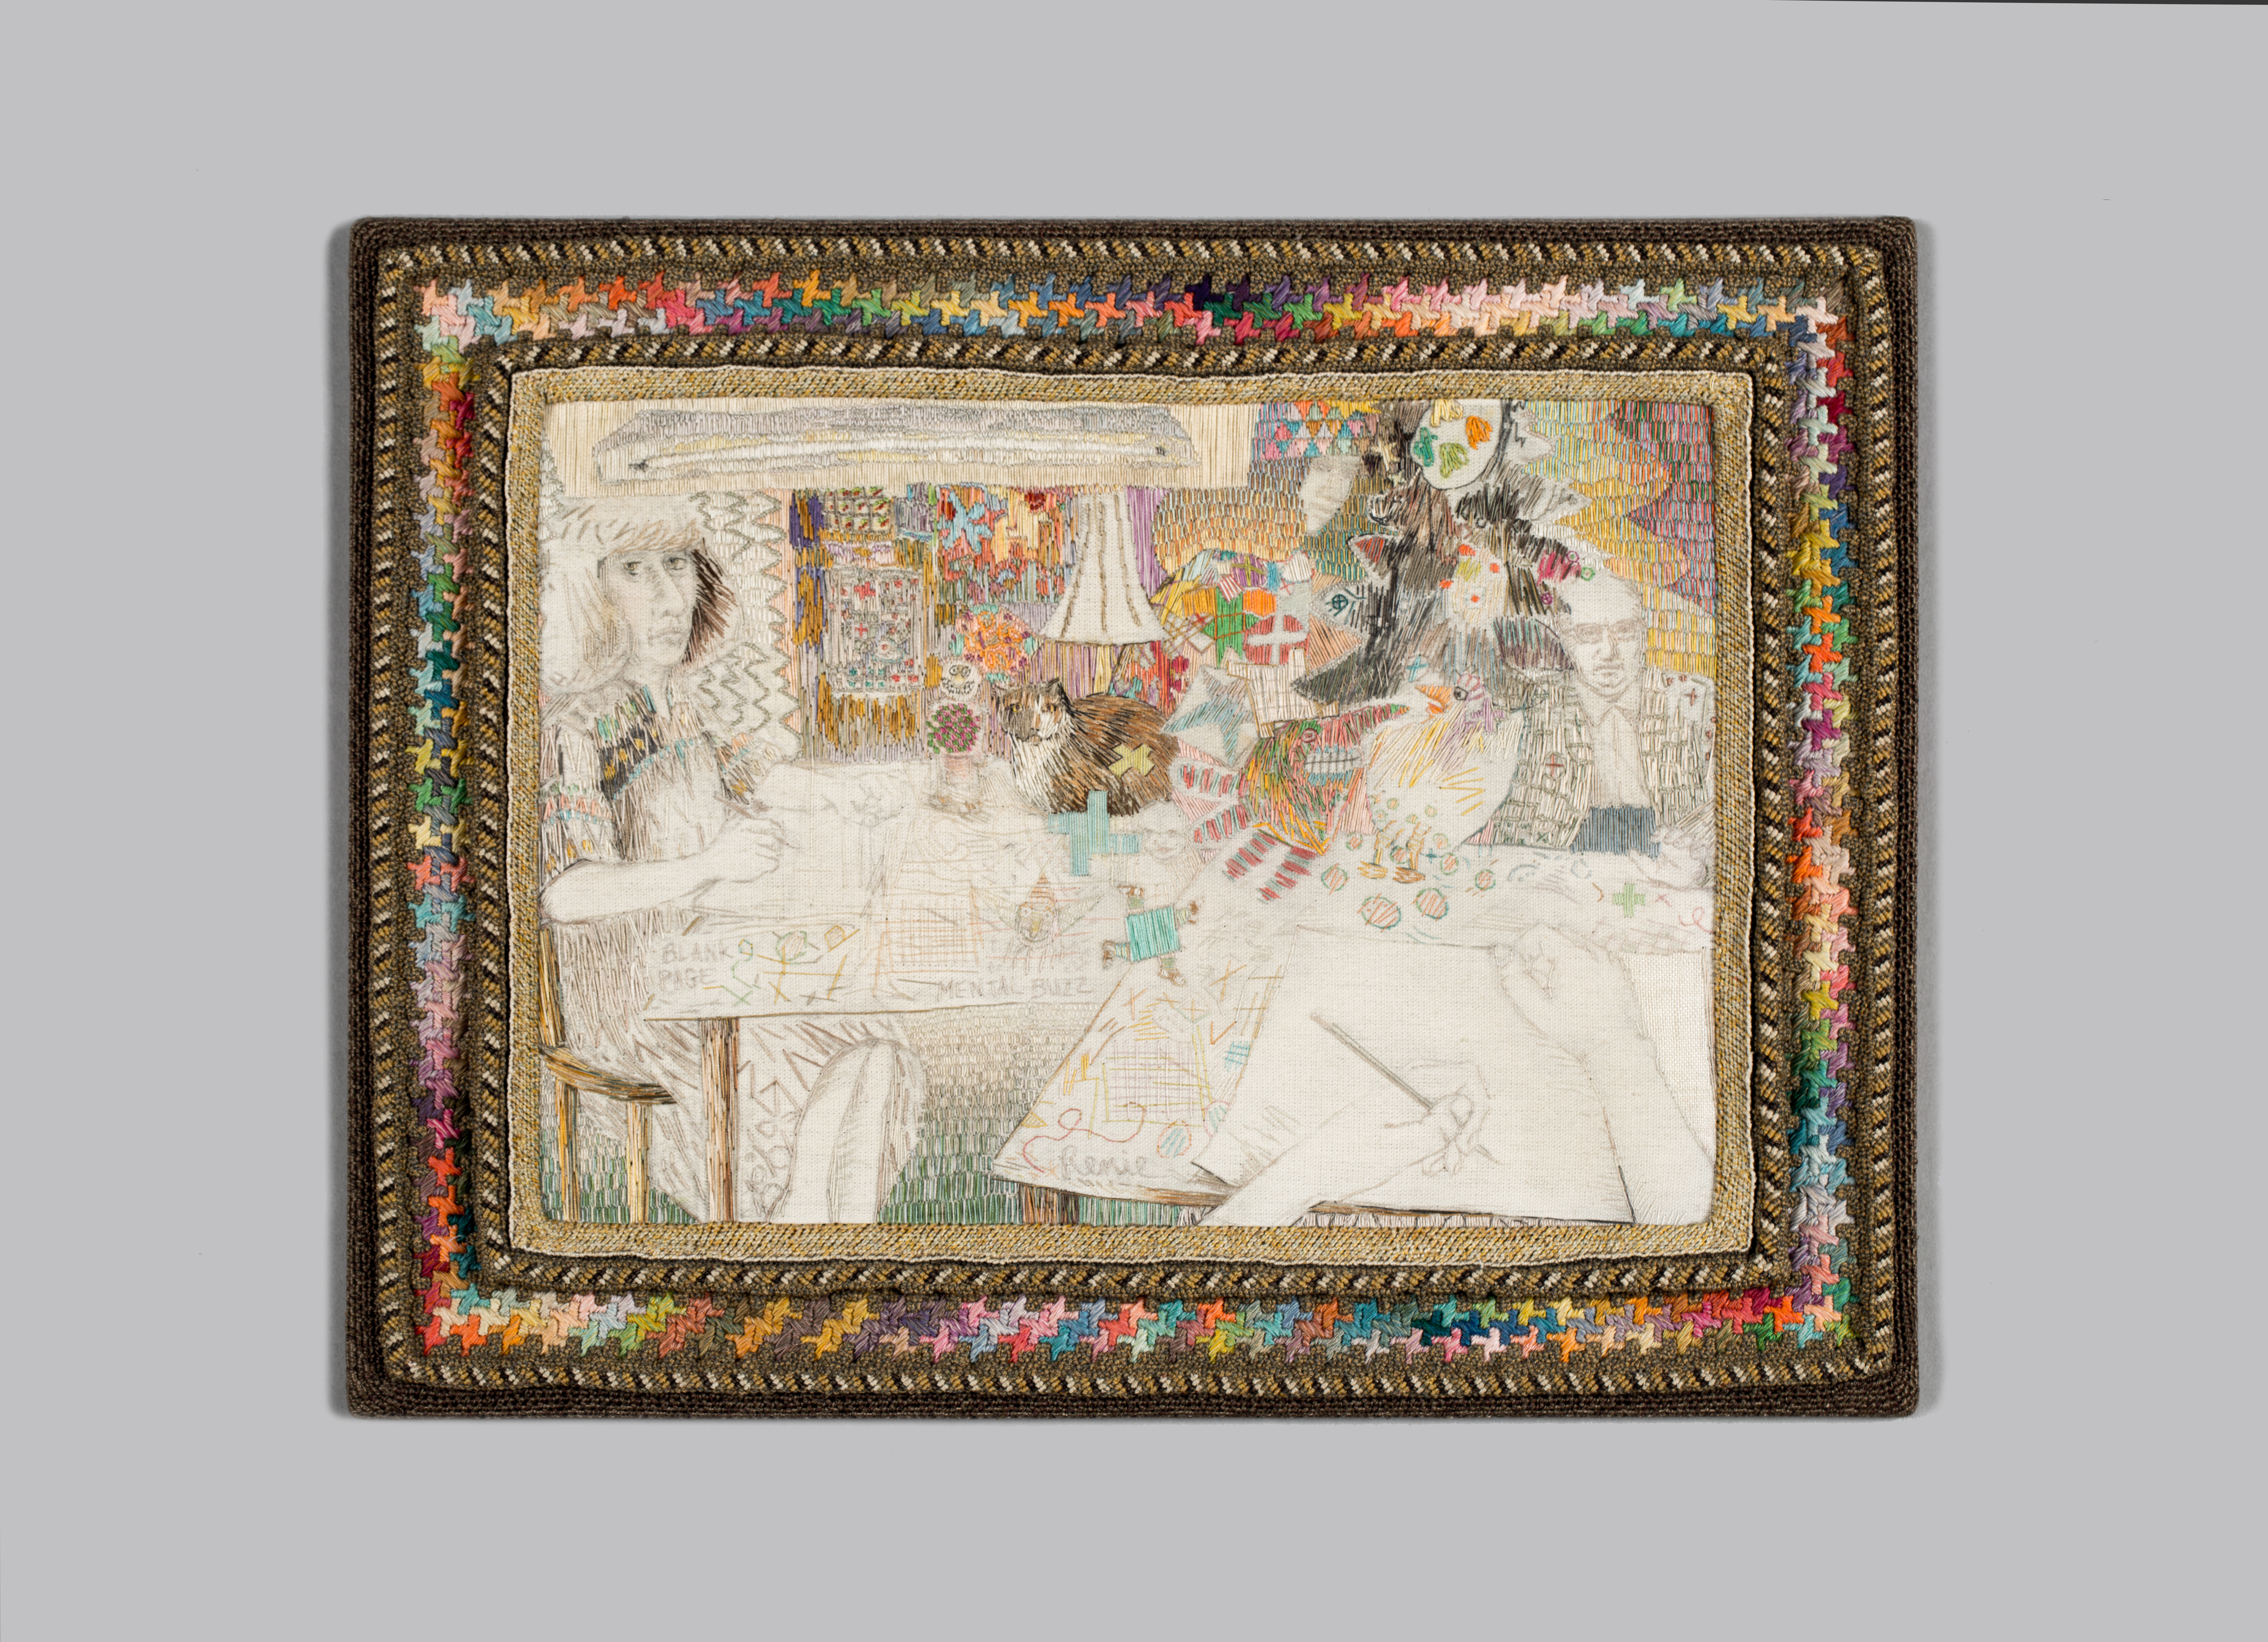 Contemporary Approaches to Needlework in Racine Art Museum Exhibition